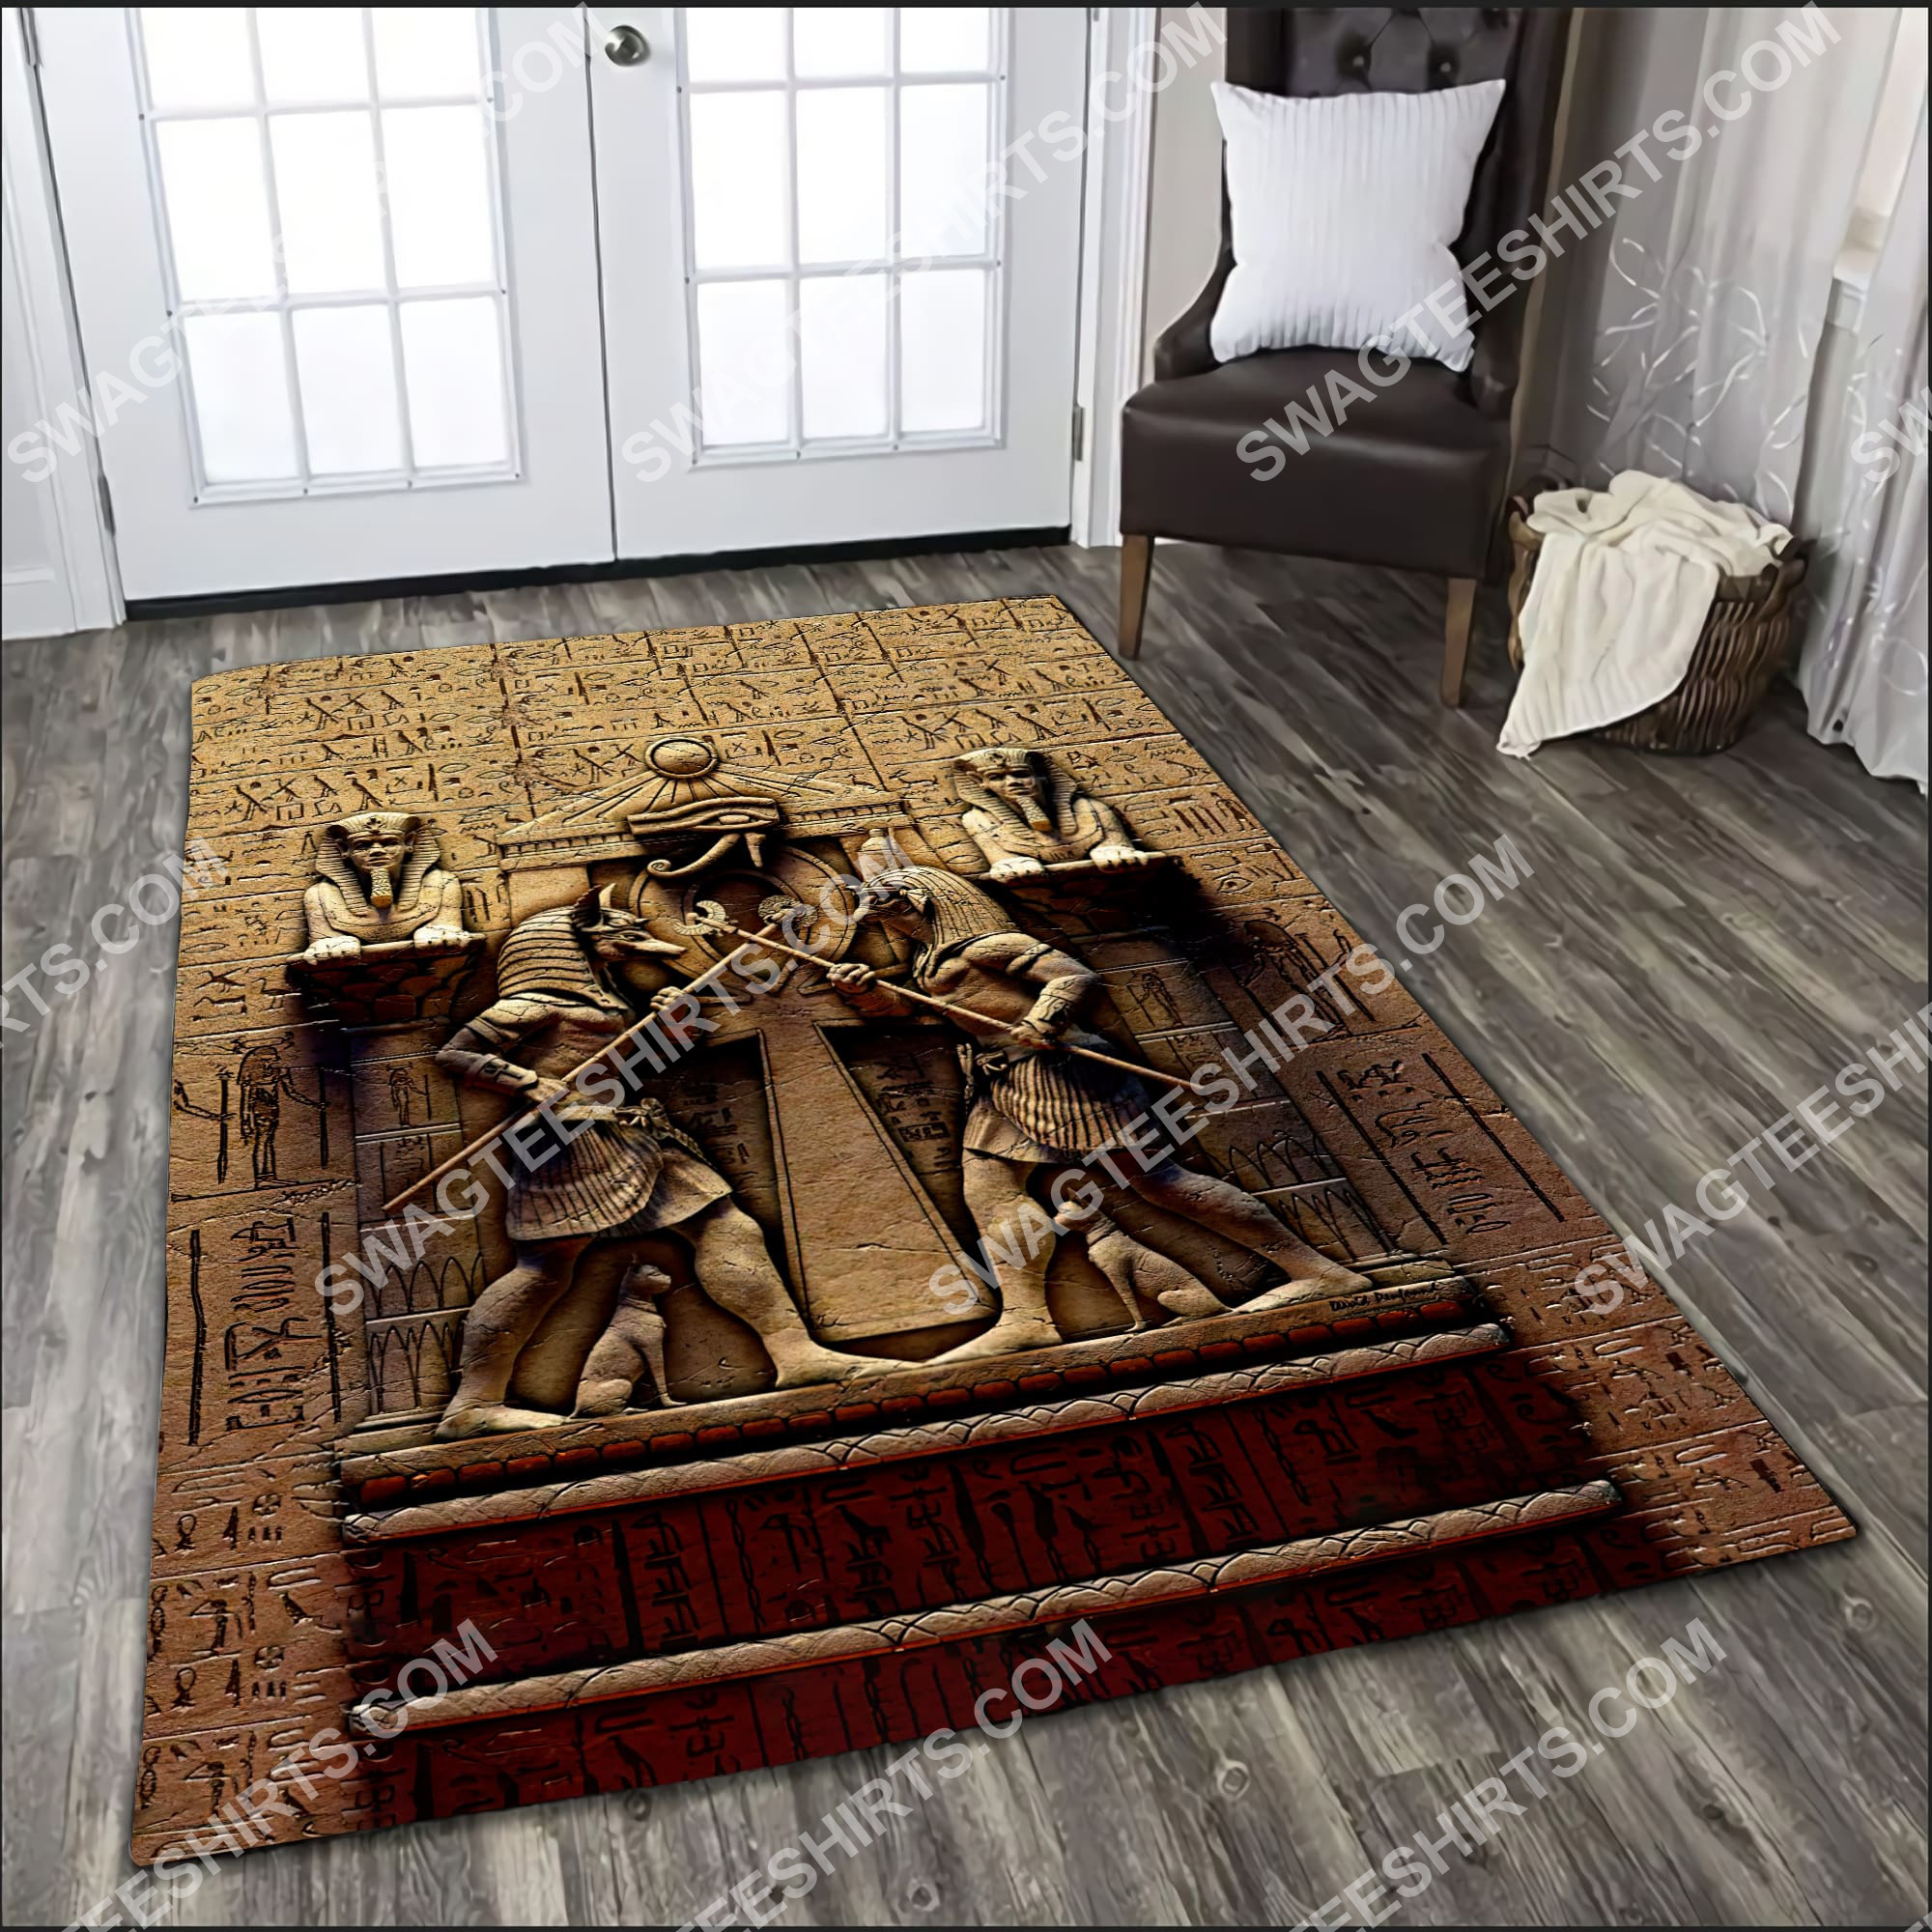 anubis egyptian civilization culture all over printed rug 3(1)